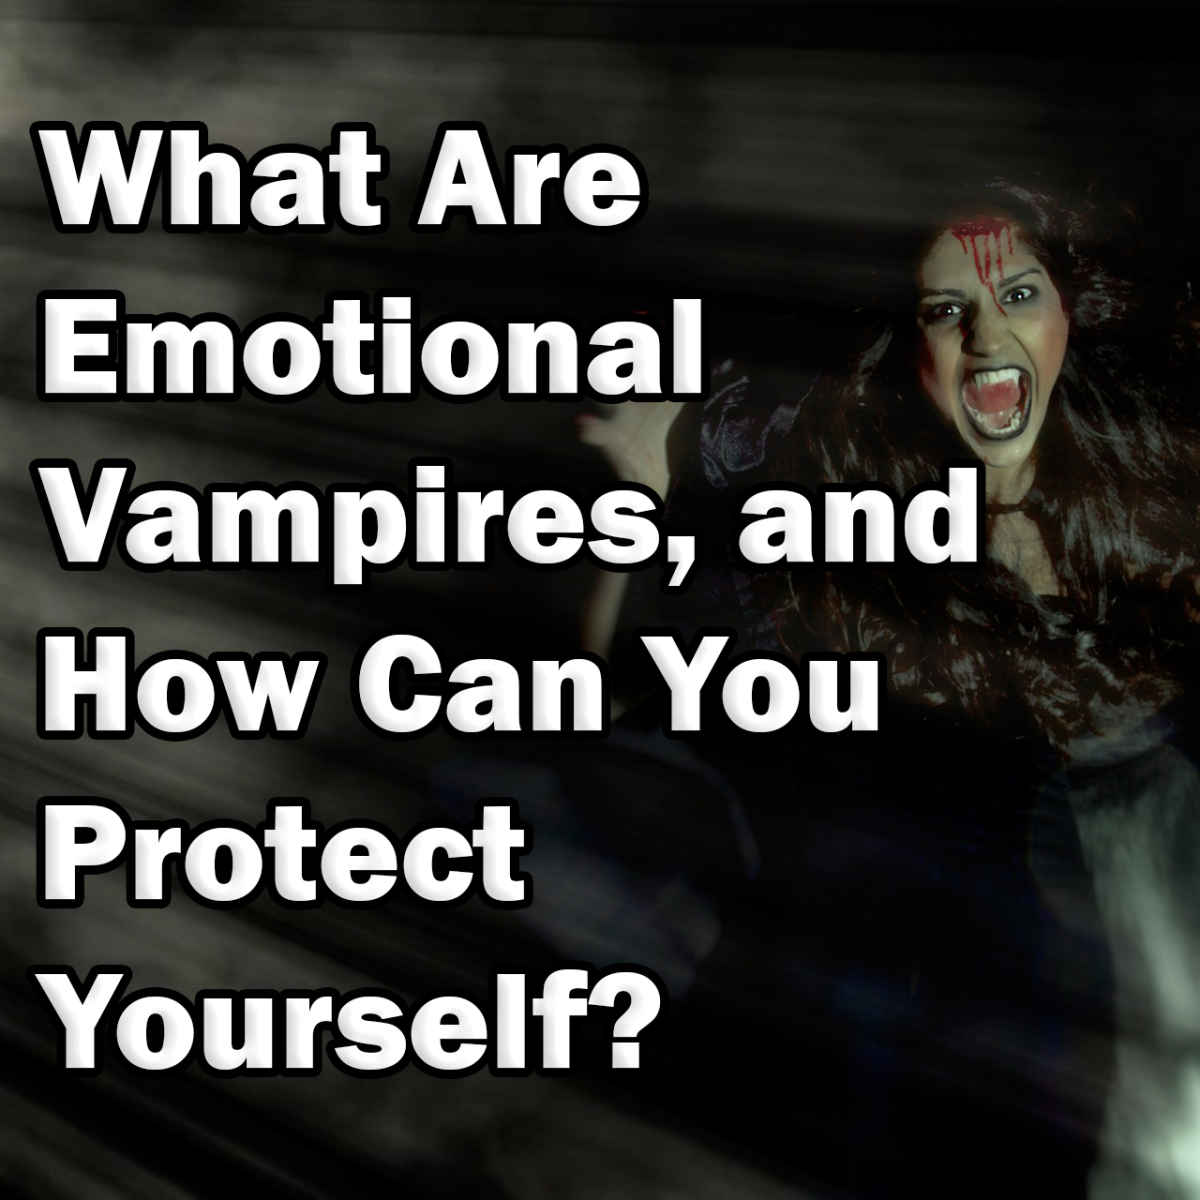 What Are Emotional Vampires, and How Can You Protect Yourself?